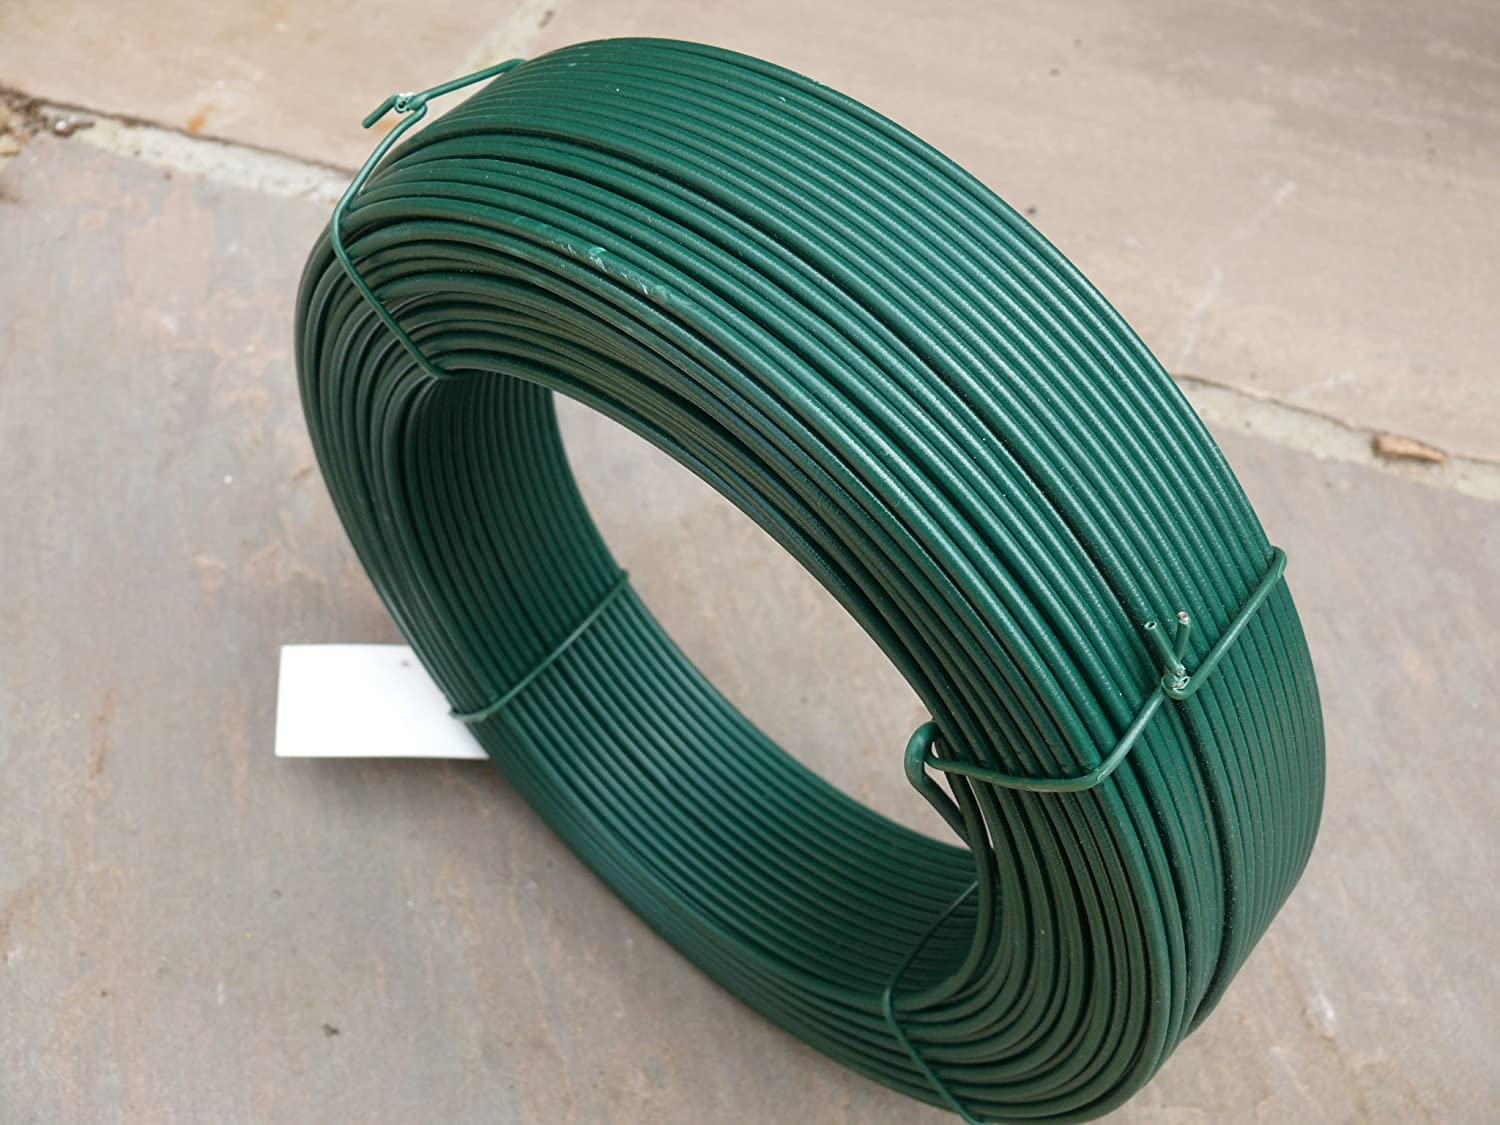 Straining Line Fencing Wire 2.5mm x 100mm PVC Coated Steel Cable ...